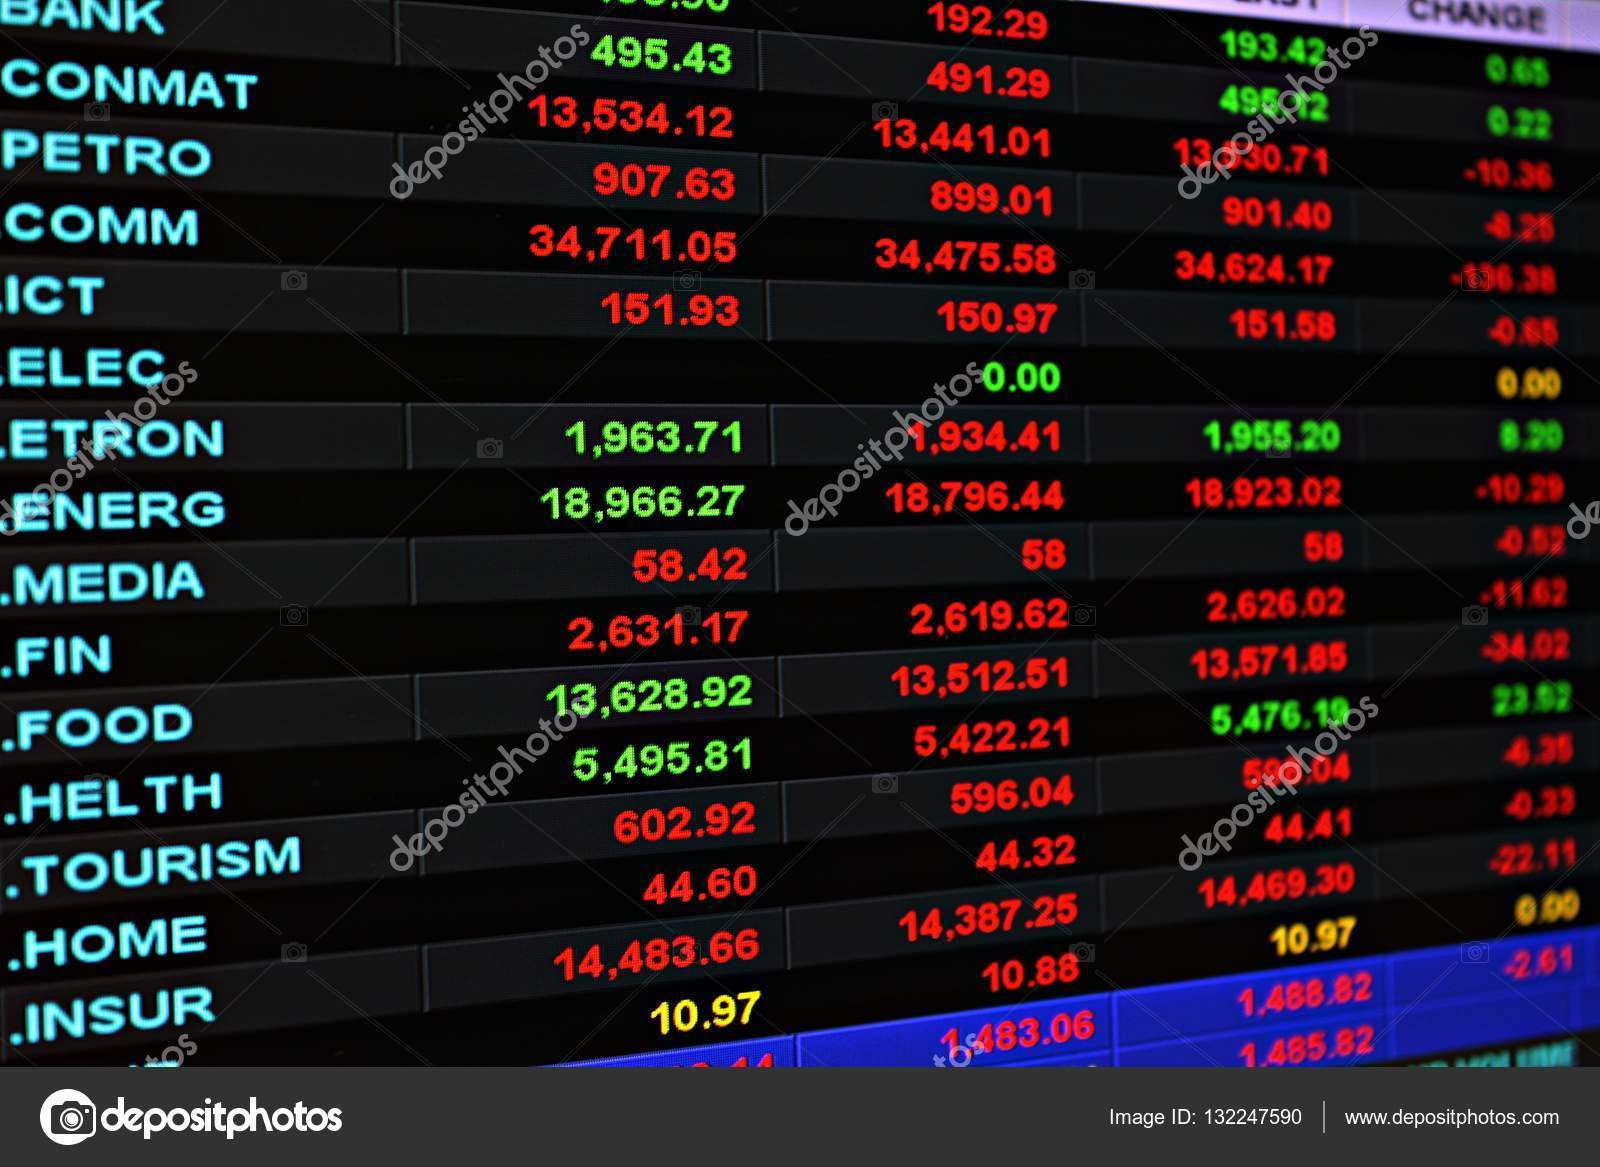 Display of stock market or stock exchange data on monitor